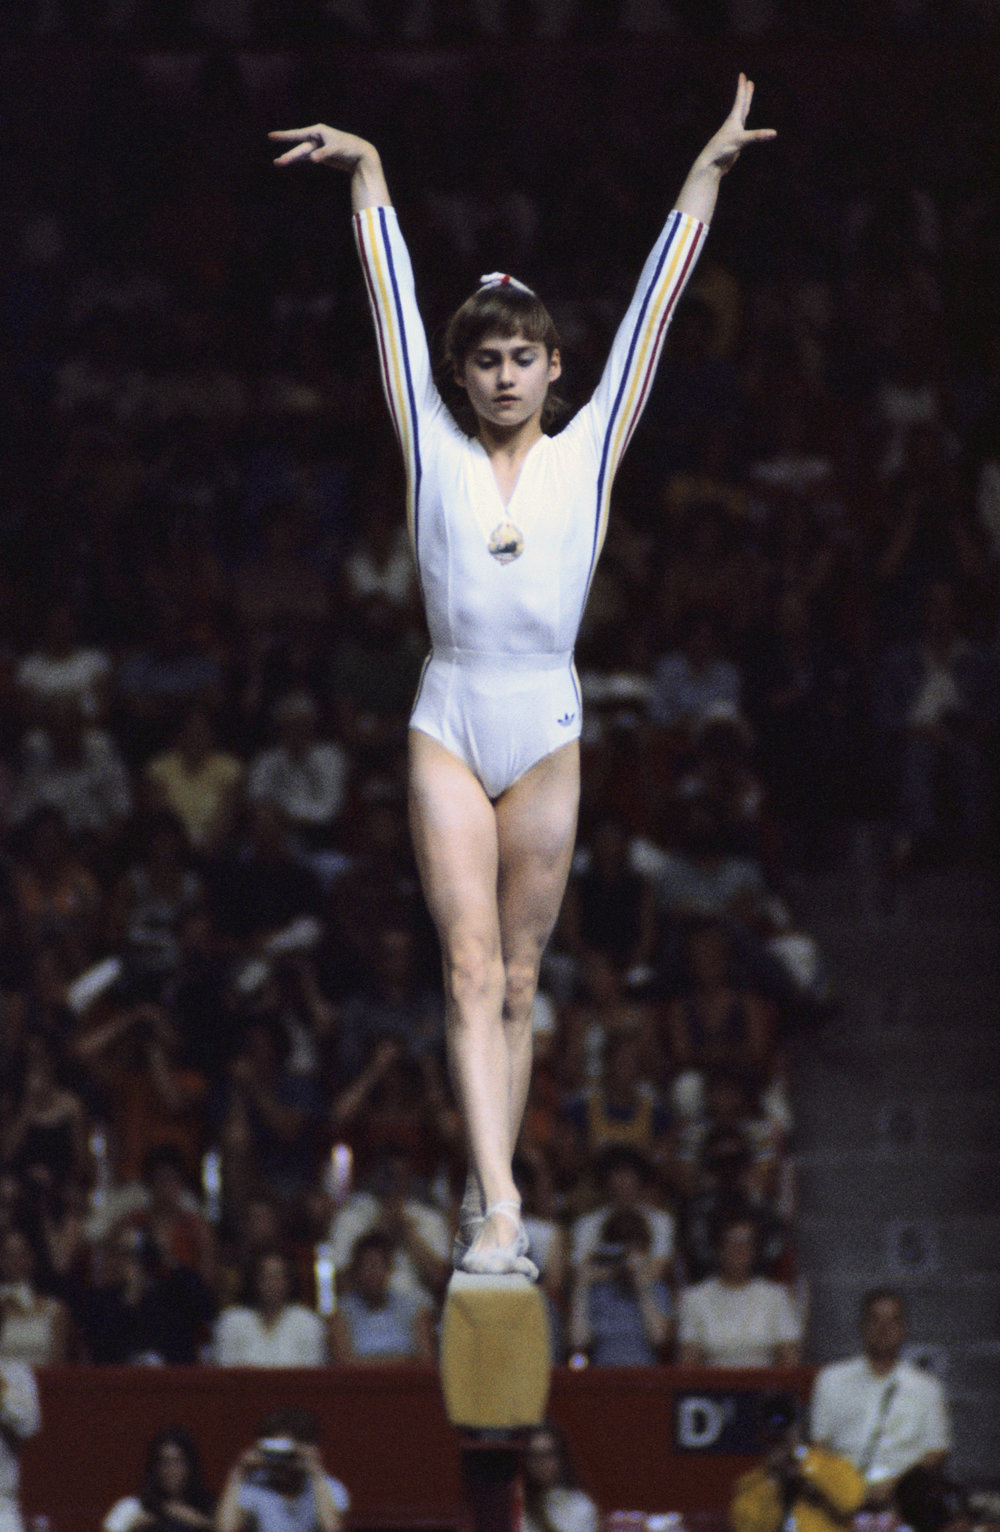 Nadia Comaneci - First gymnast to be awarded a perfect score of 10.0